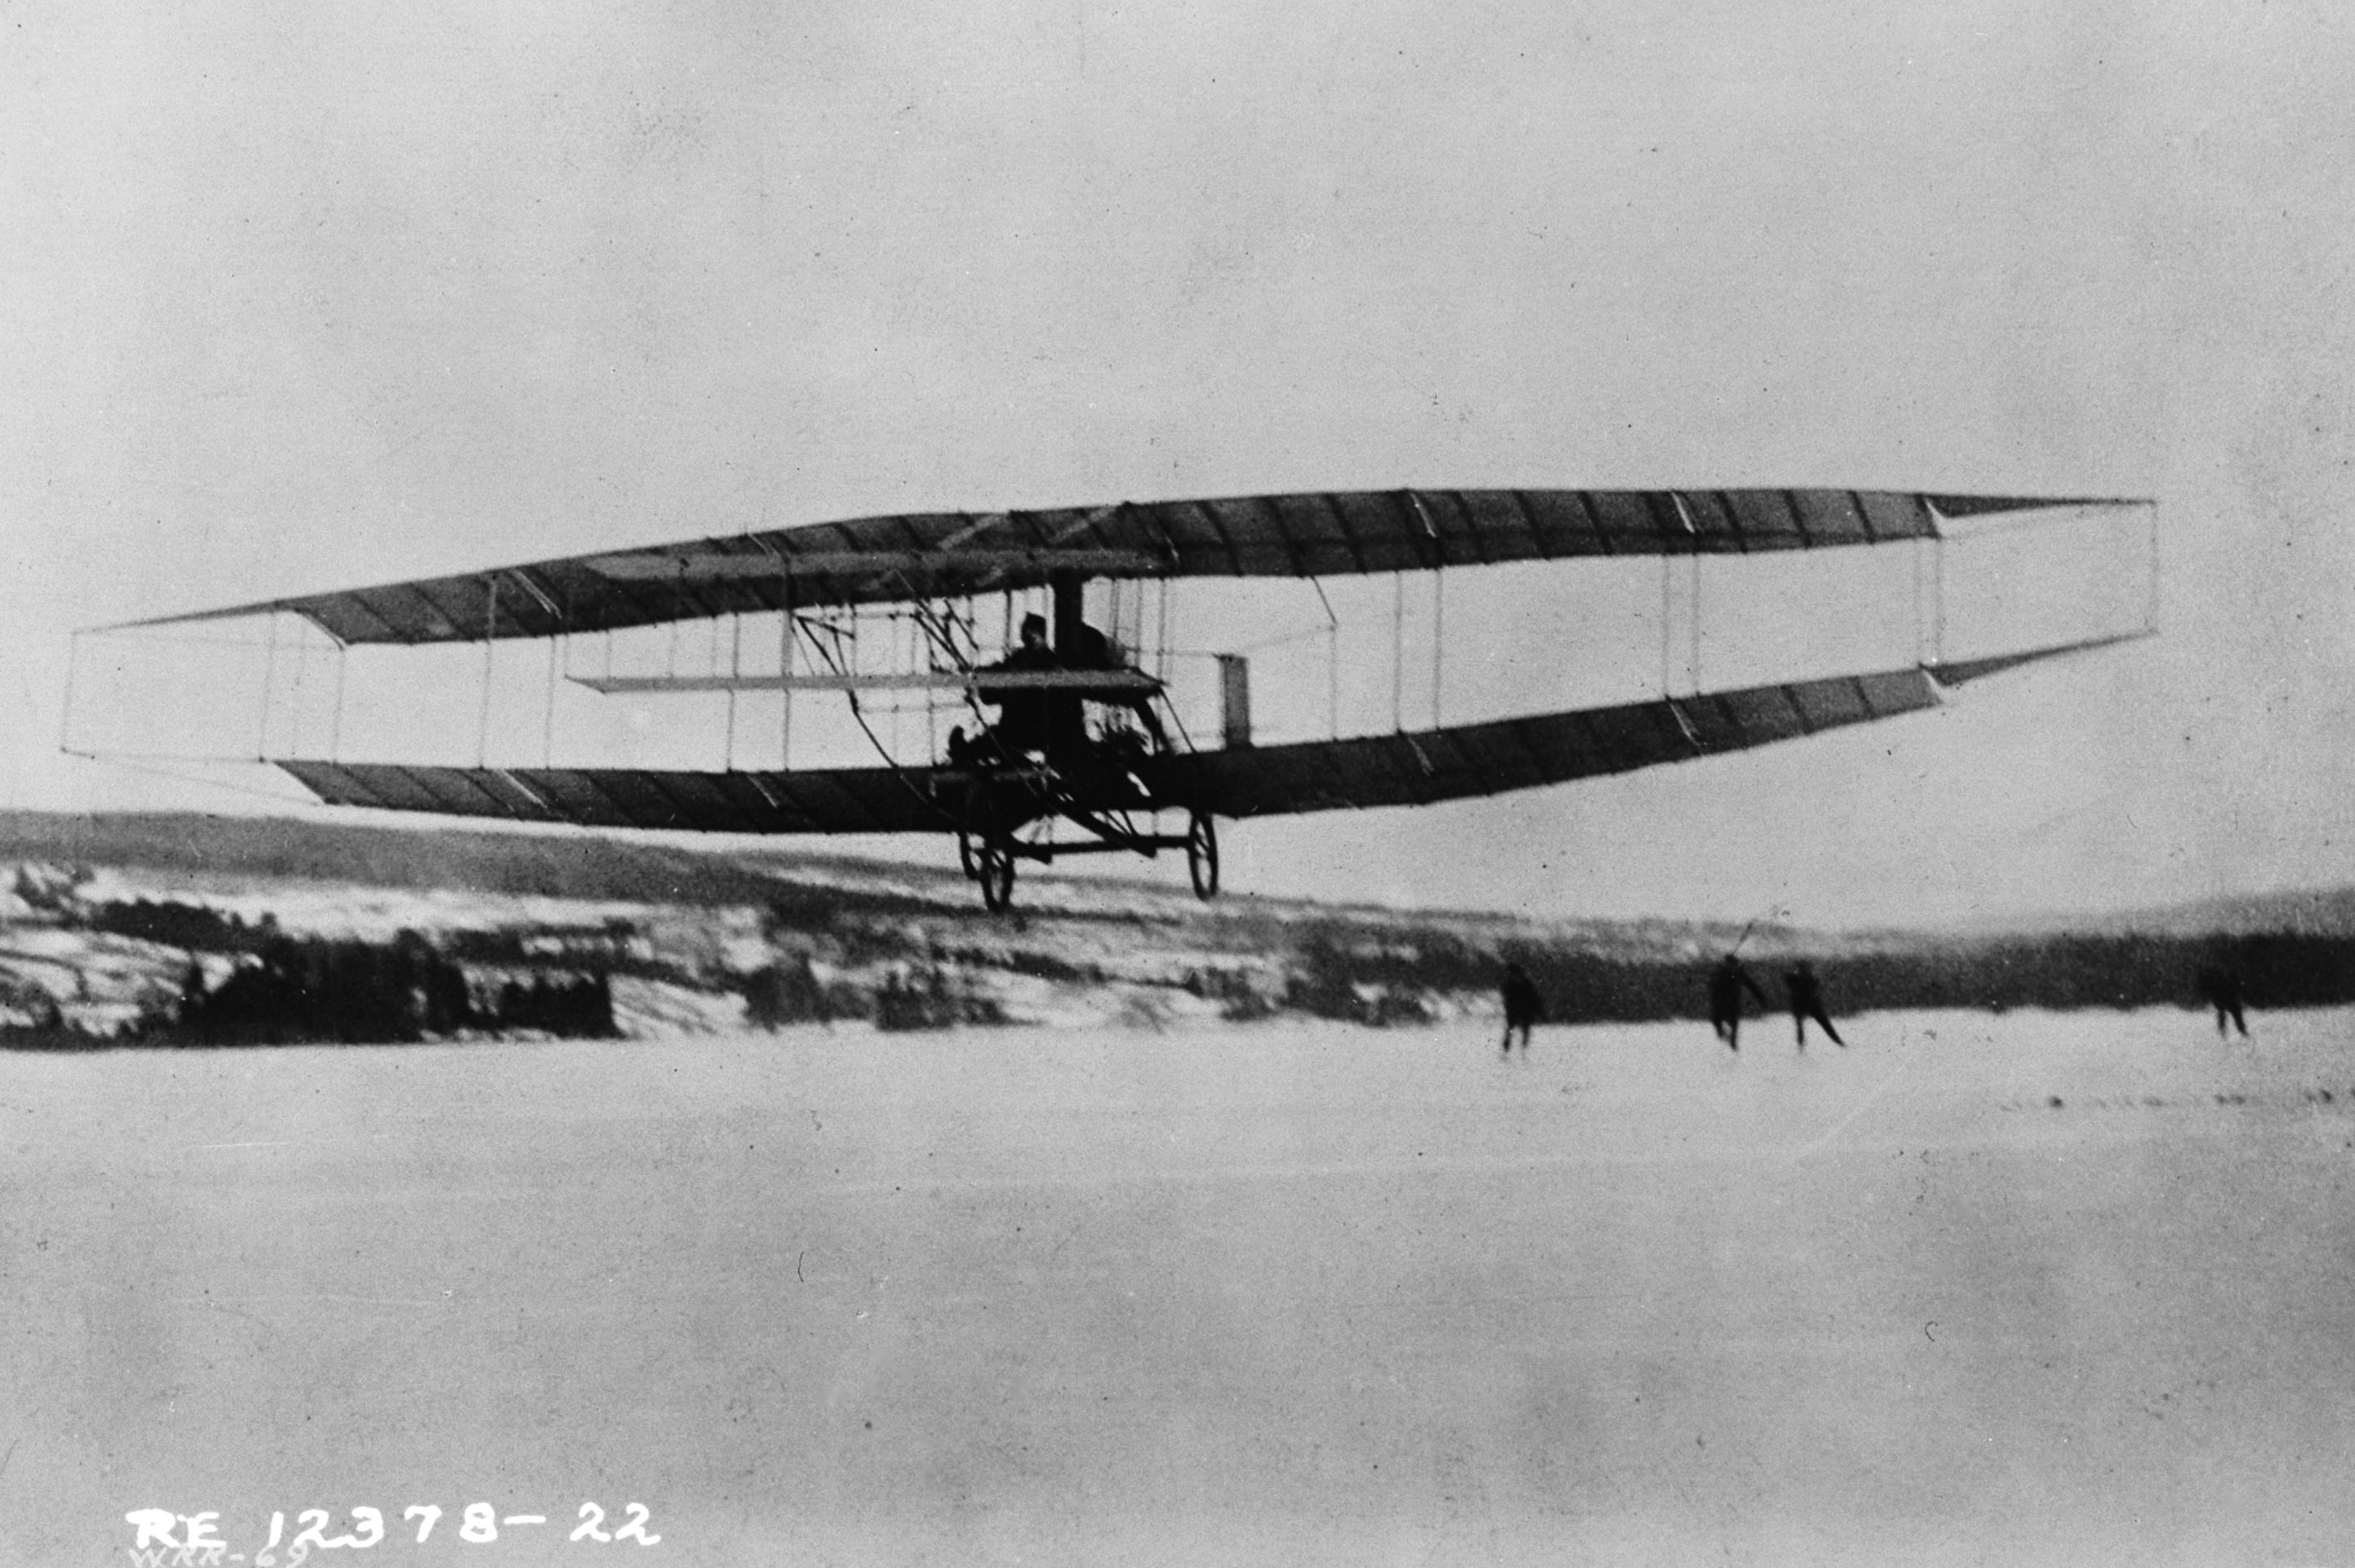 The Silver Dart flying above the ice at Baddeck Bay, Nova Scotia, in 1909.